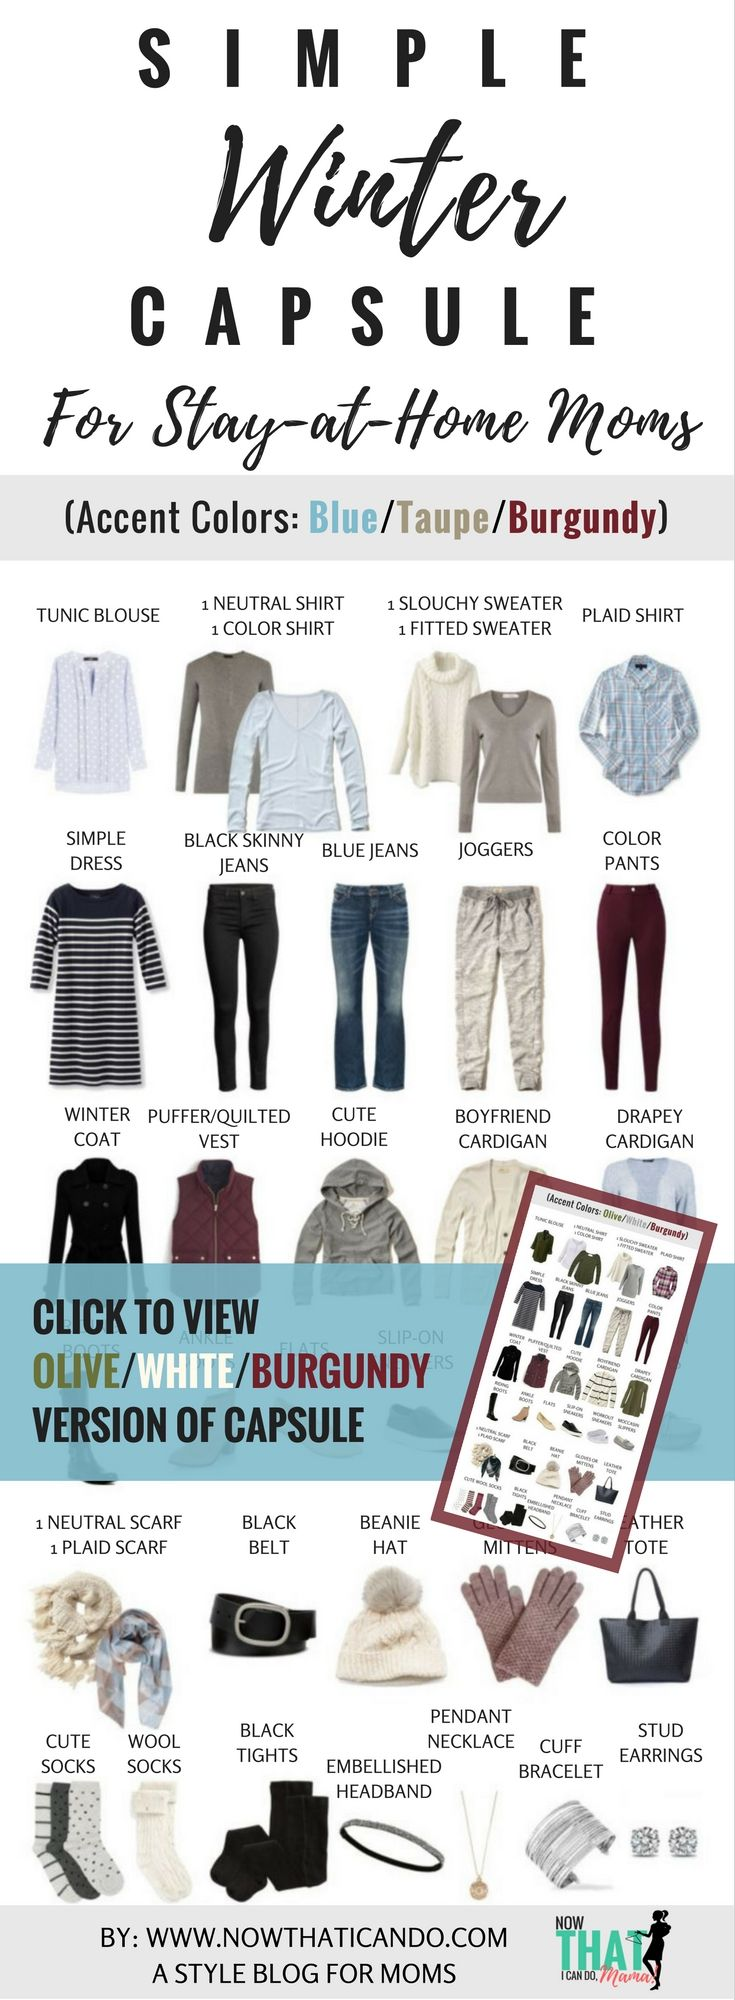 Effortless style is at your fingertips with this 35 piece, carefully designed wardrobe plan for busy moms! The colors are so beautiful! Blue, taupe, burgundy, olive... it's hard to decide which version I like better! The blog post has some amazing tips and the steps for coming up with all 130 plus outfit variations. There is also a free clothing planner checklist that you can print out and 7 free outfit layout ideas to get you started.